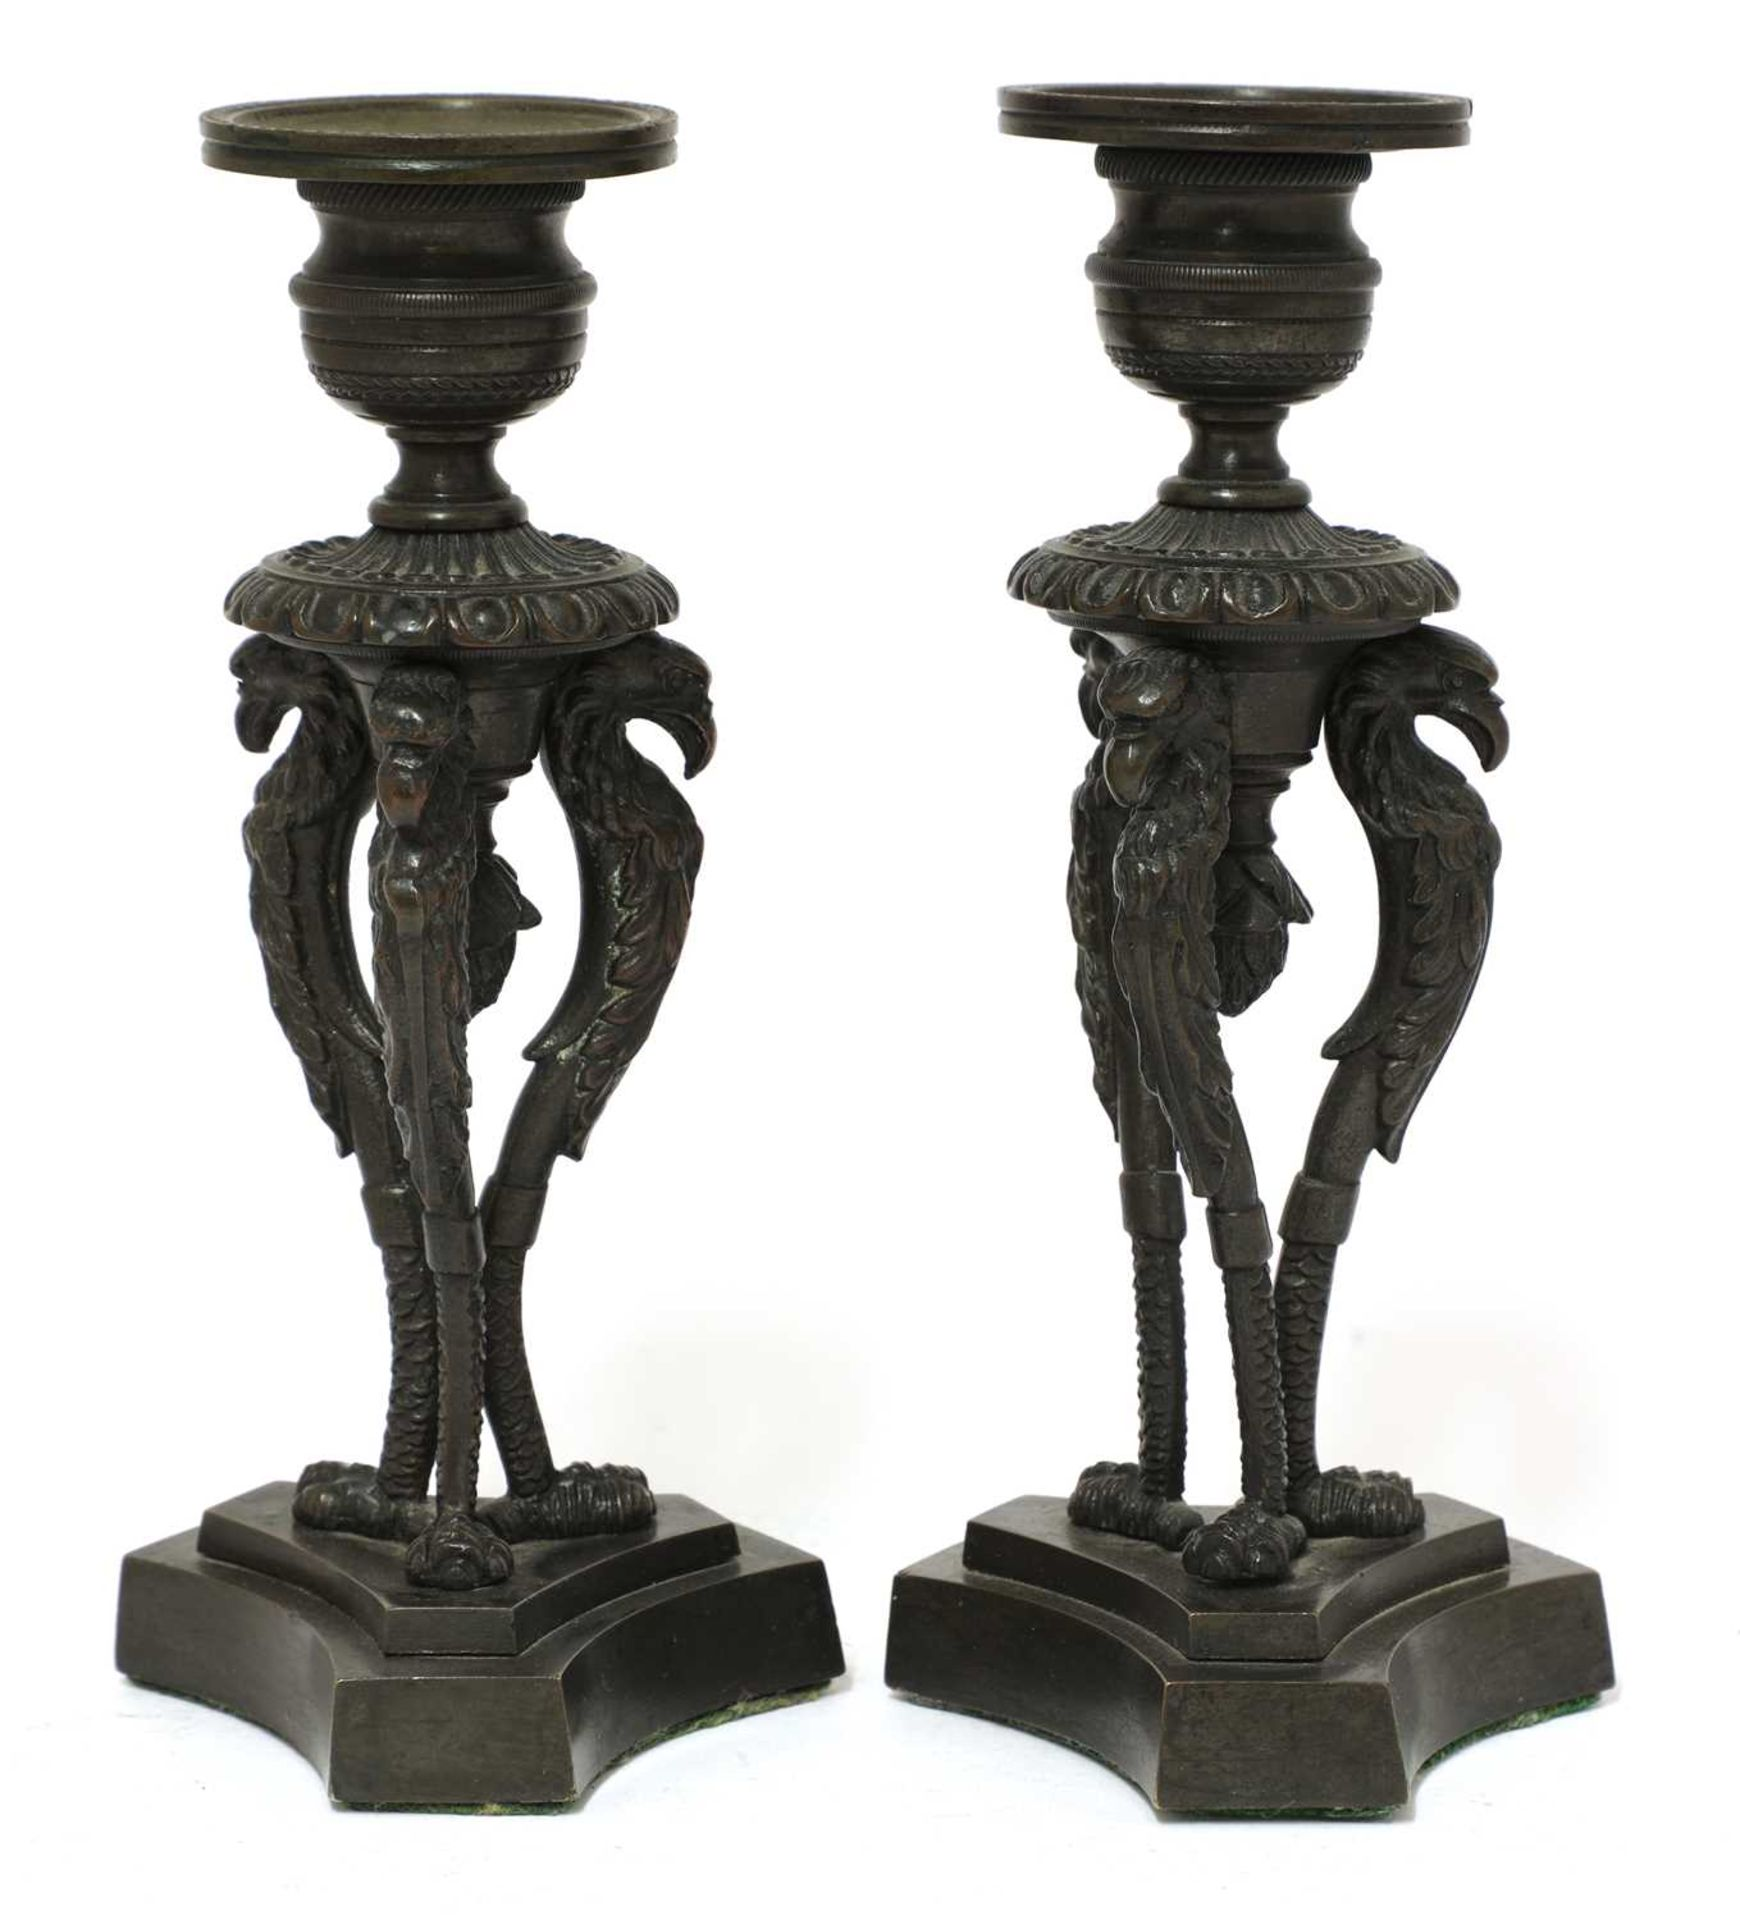 A pair of bronze candlesticks, - Image 2 of 3